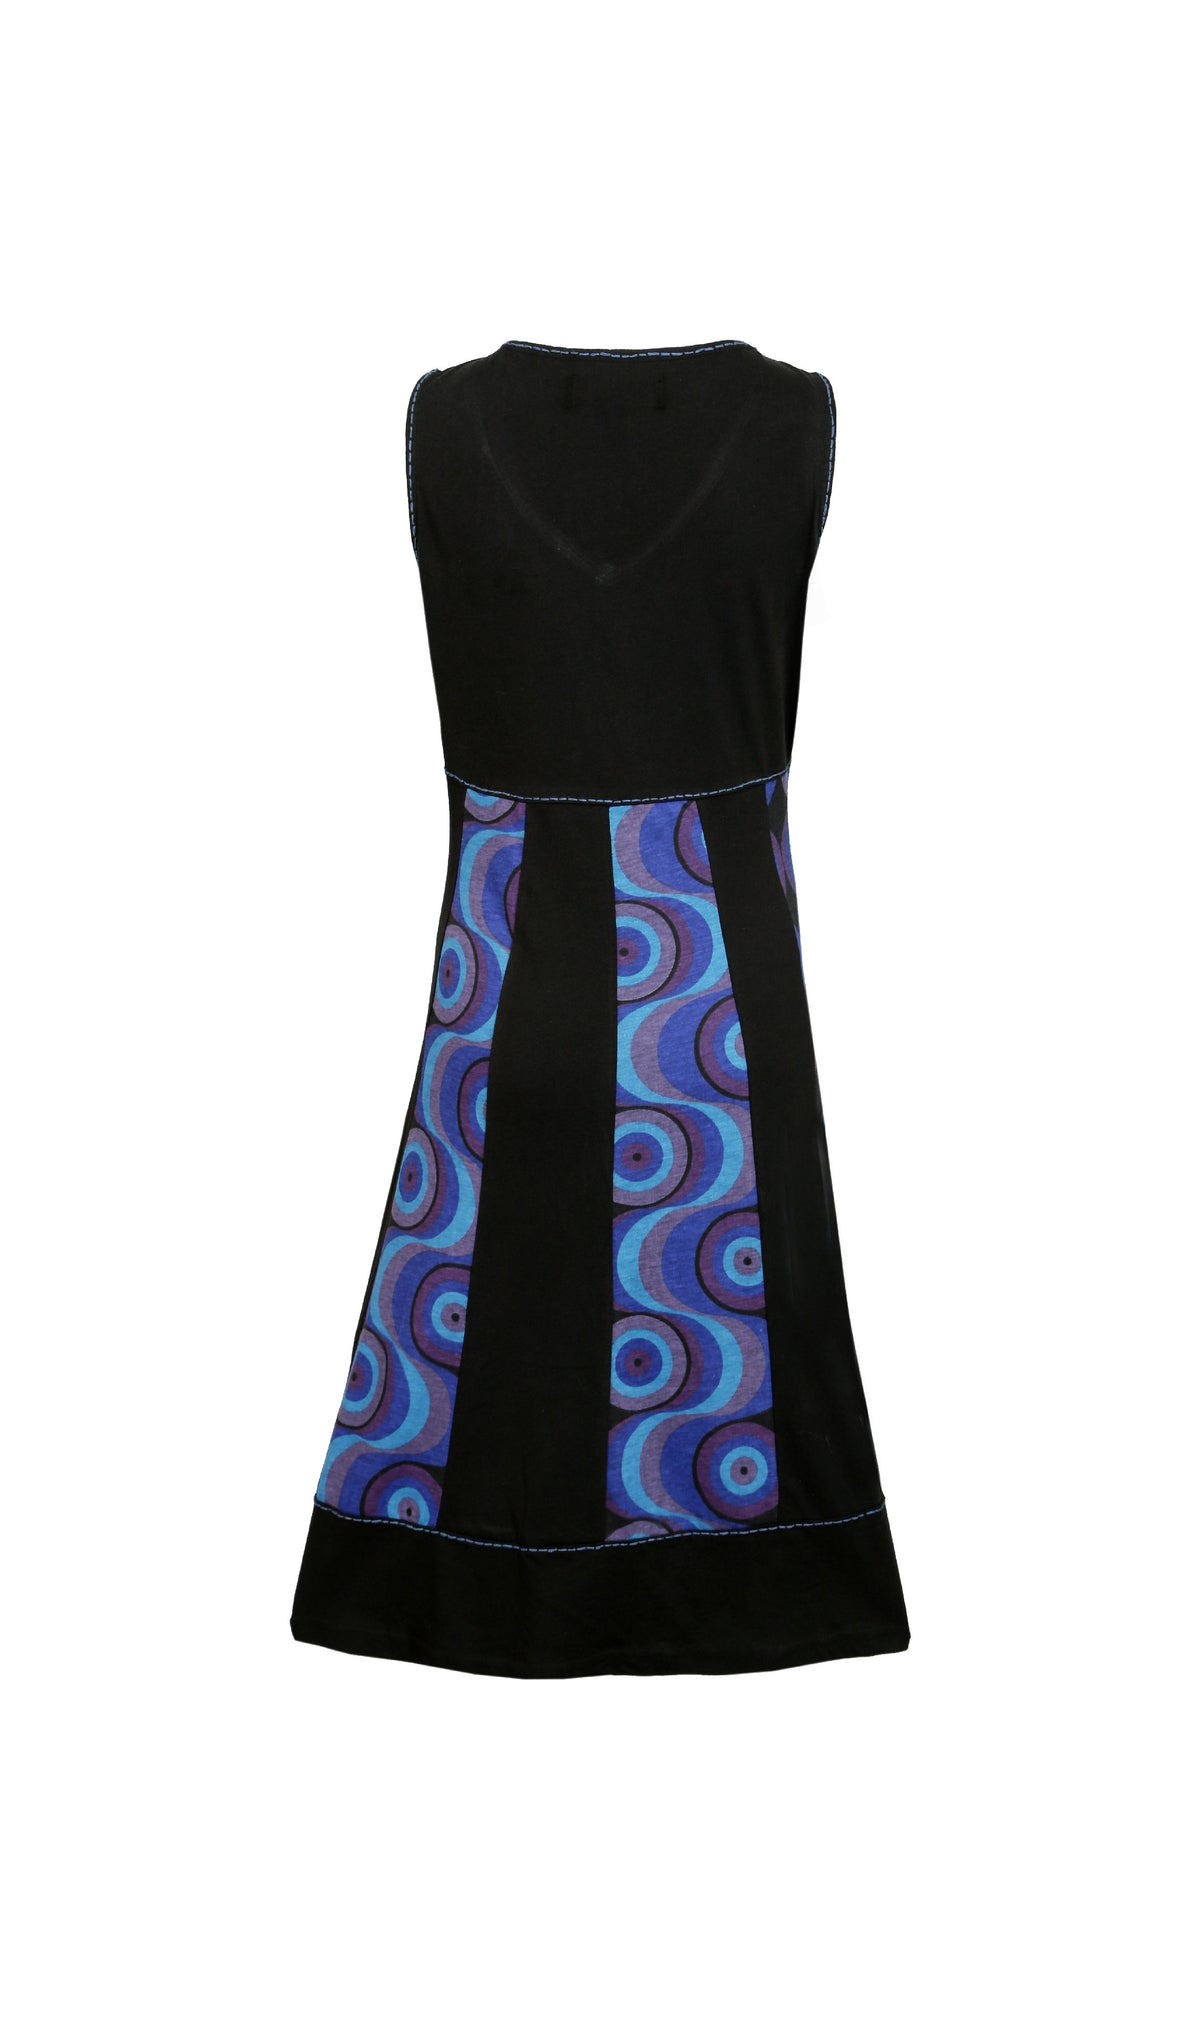 Ladies Summer Sleeveless V-Neck Dress with Bubble Print and Embroidery - Craze Trade Limited